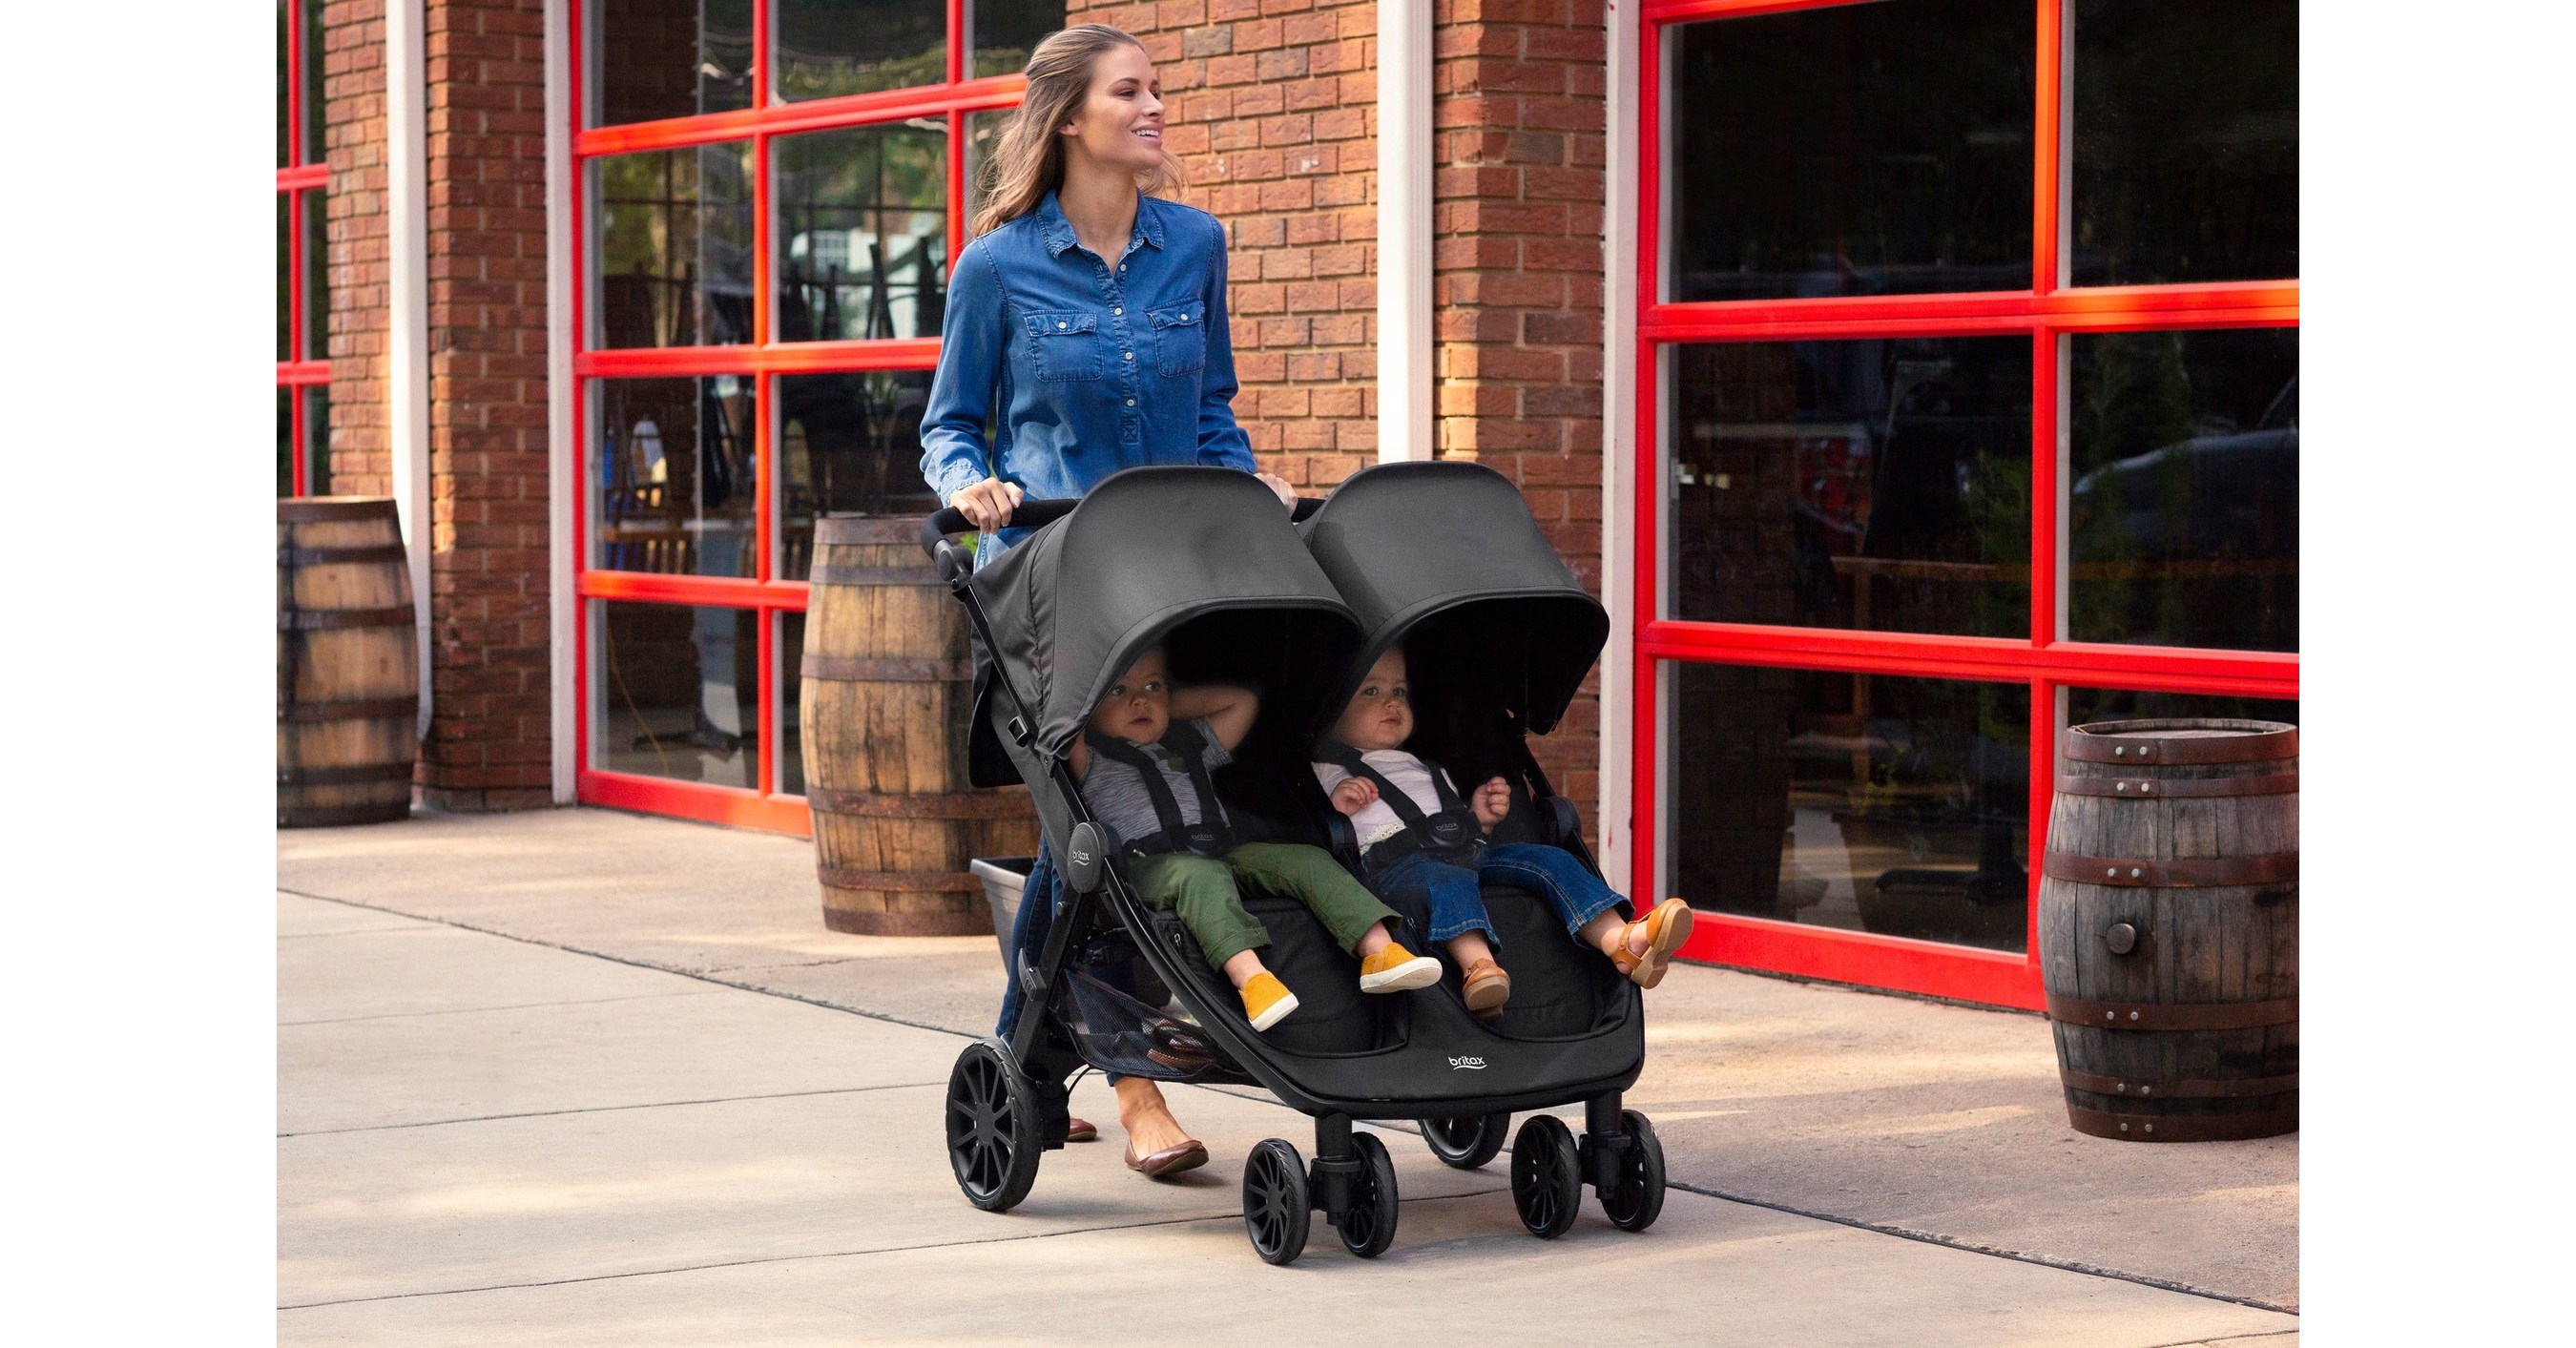 New Britax B Lively Double Stroller Offers Comfort And Convenience